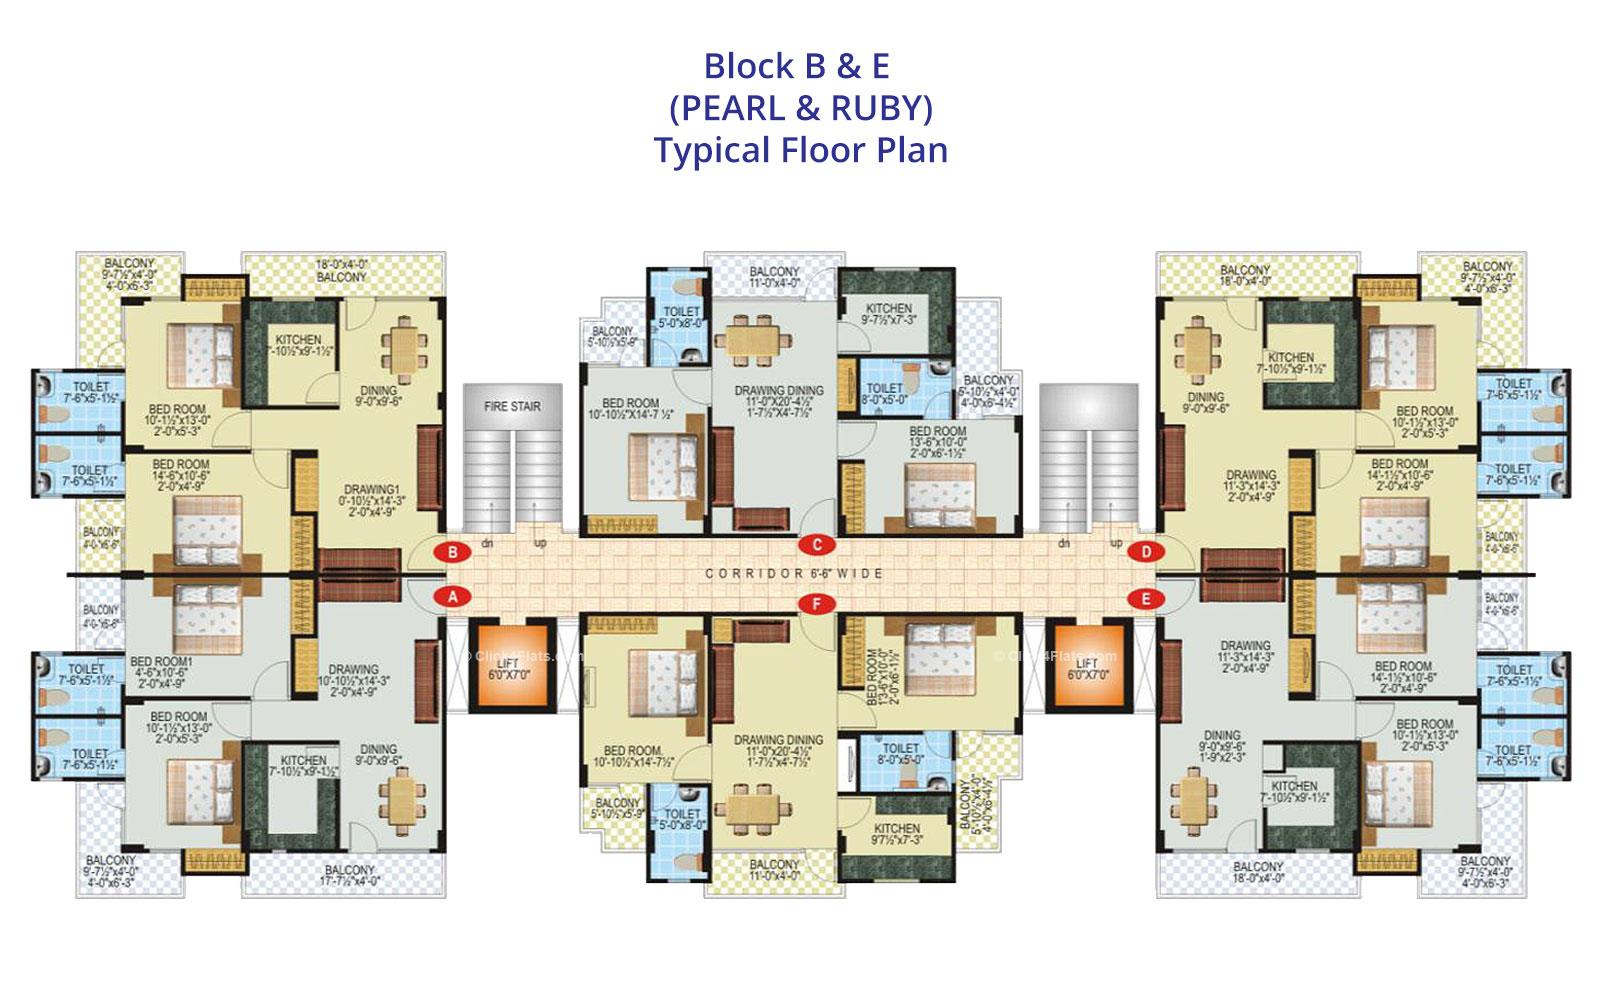 SDC Green Park Typical Floor Plan (Block B & E)